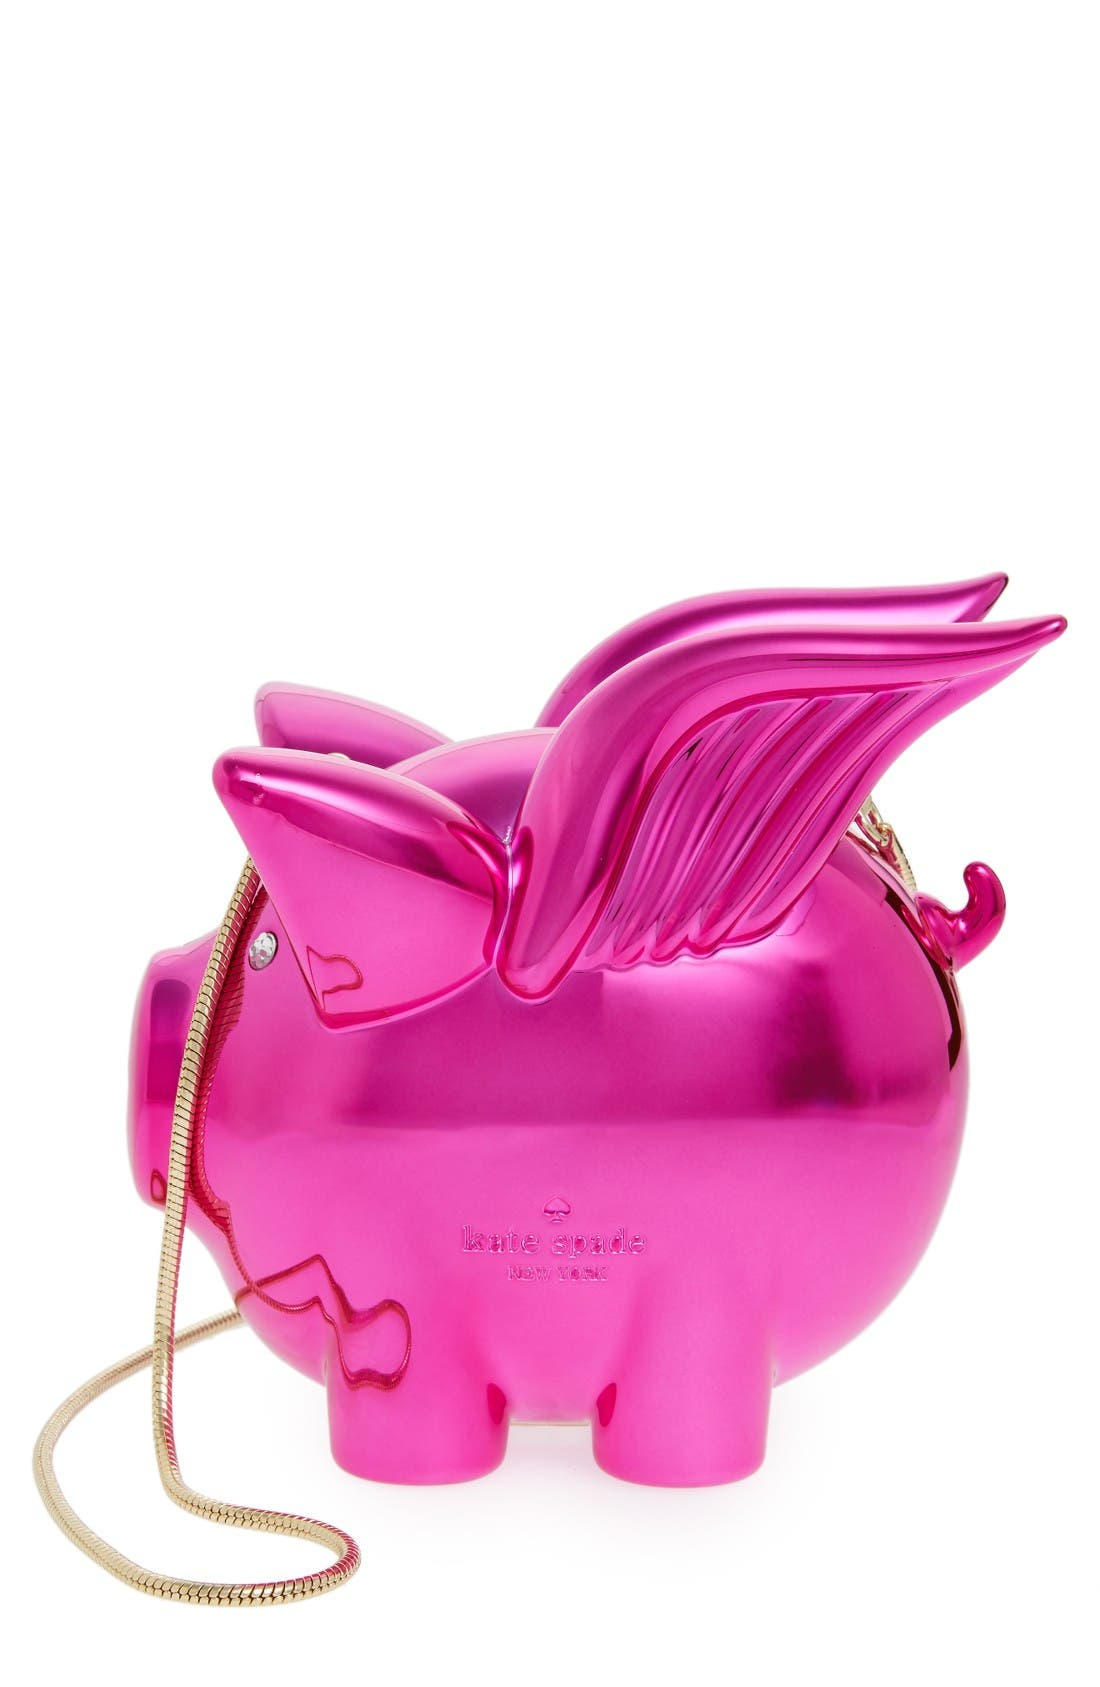 Main Image - kate spade new york when pigs fly frame clutch